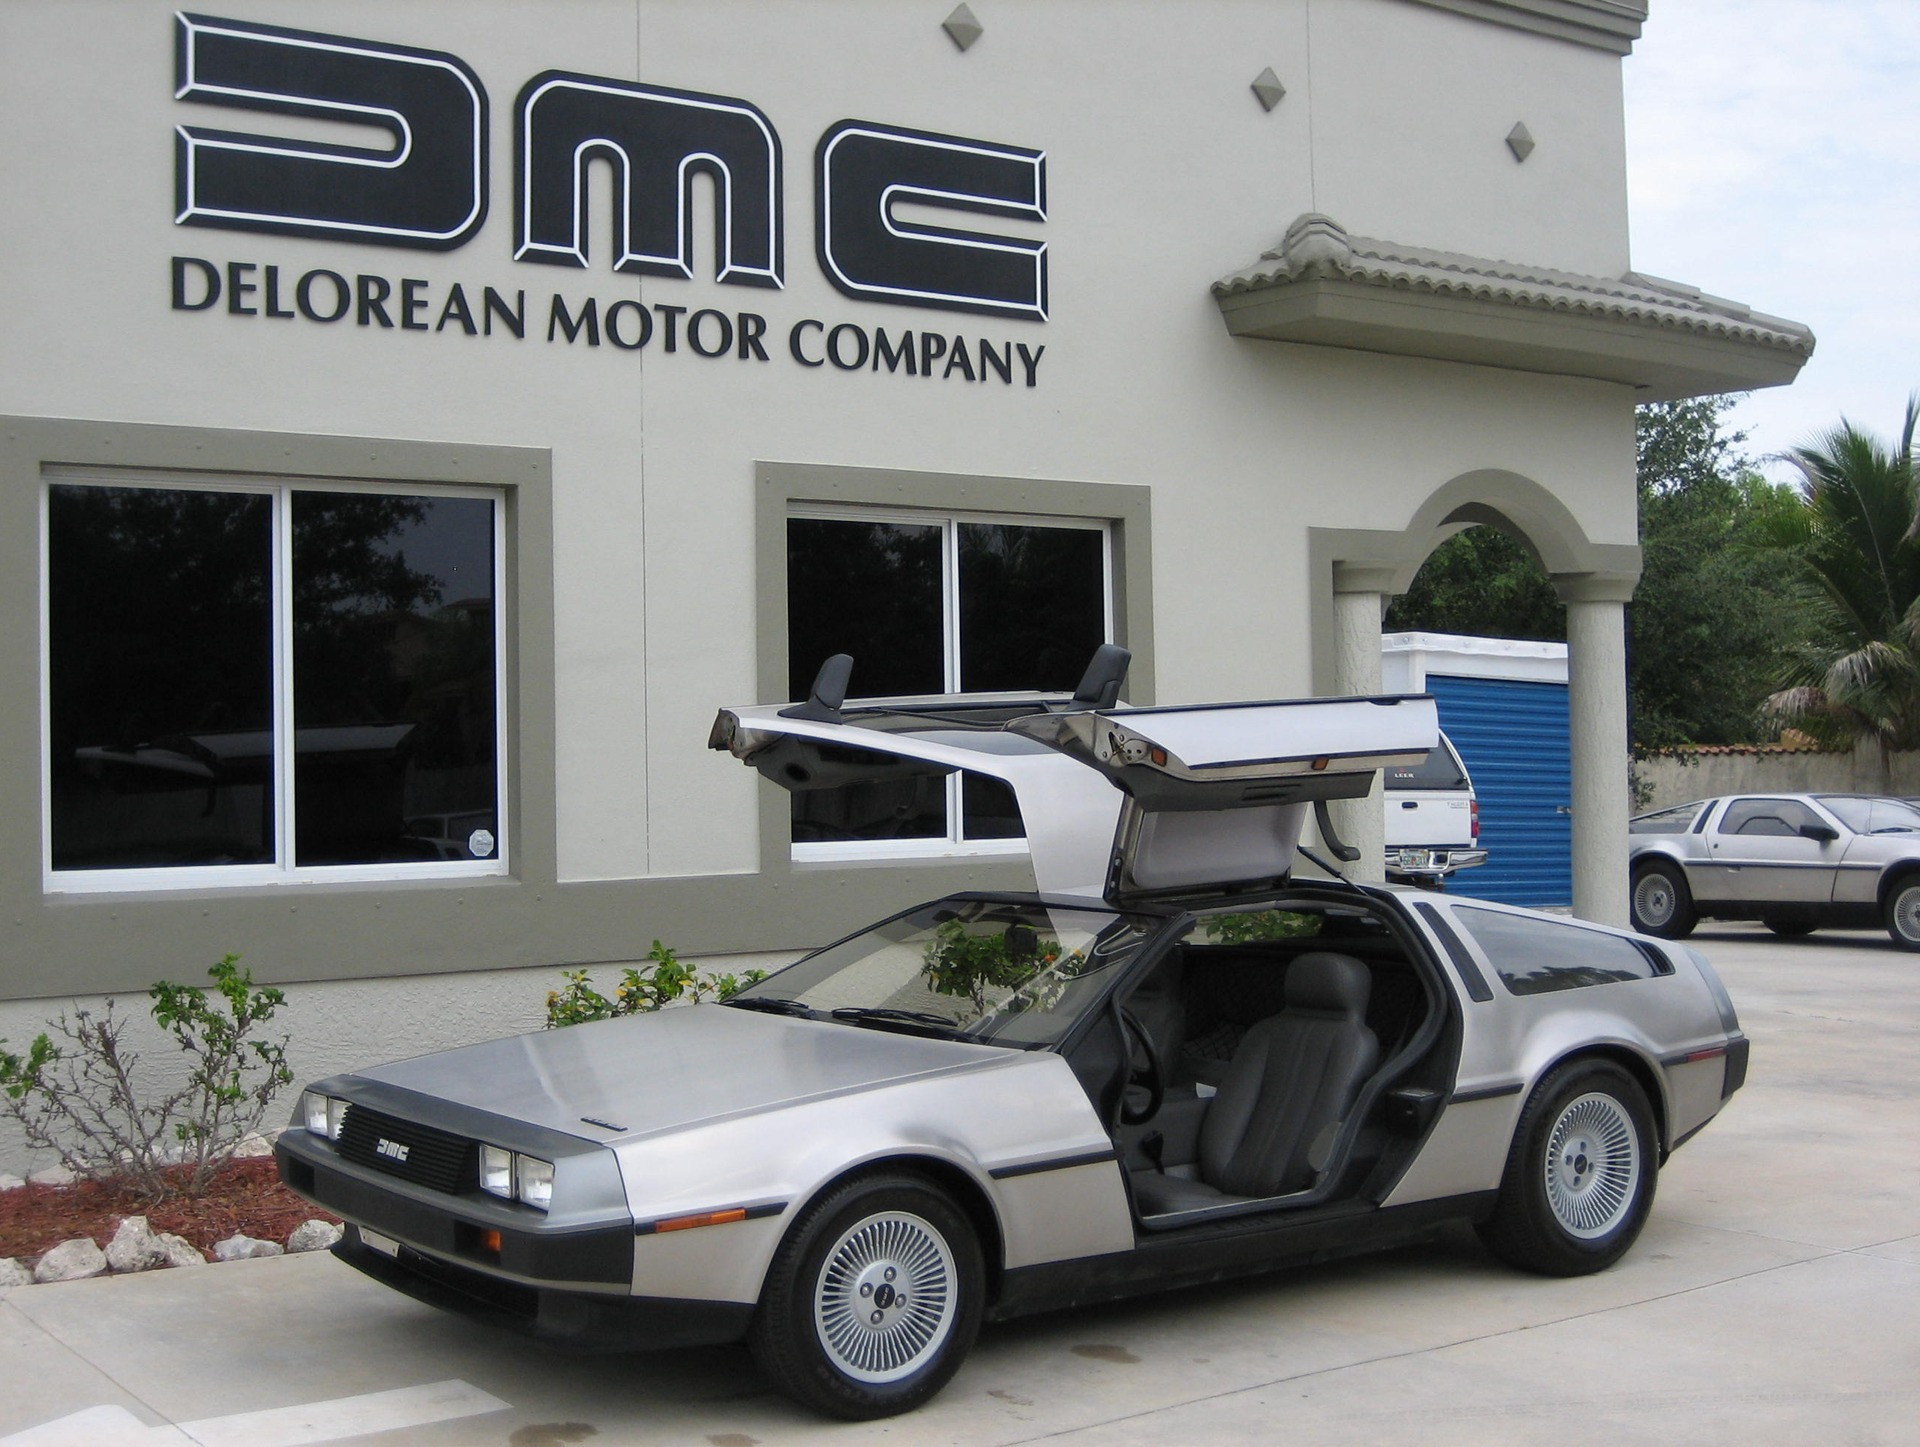 История компании DeLorean